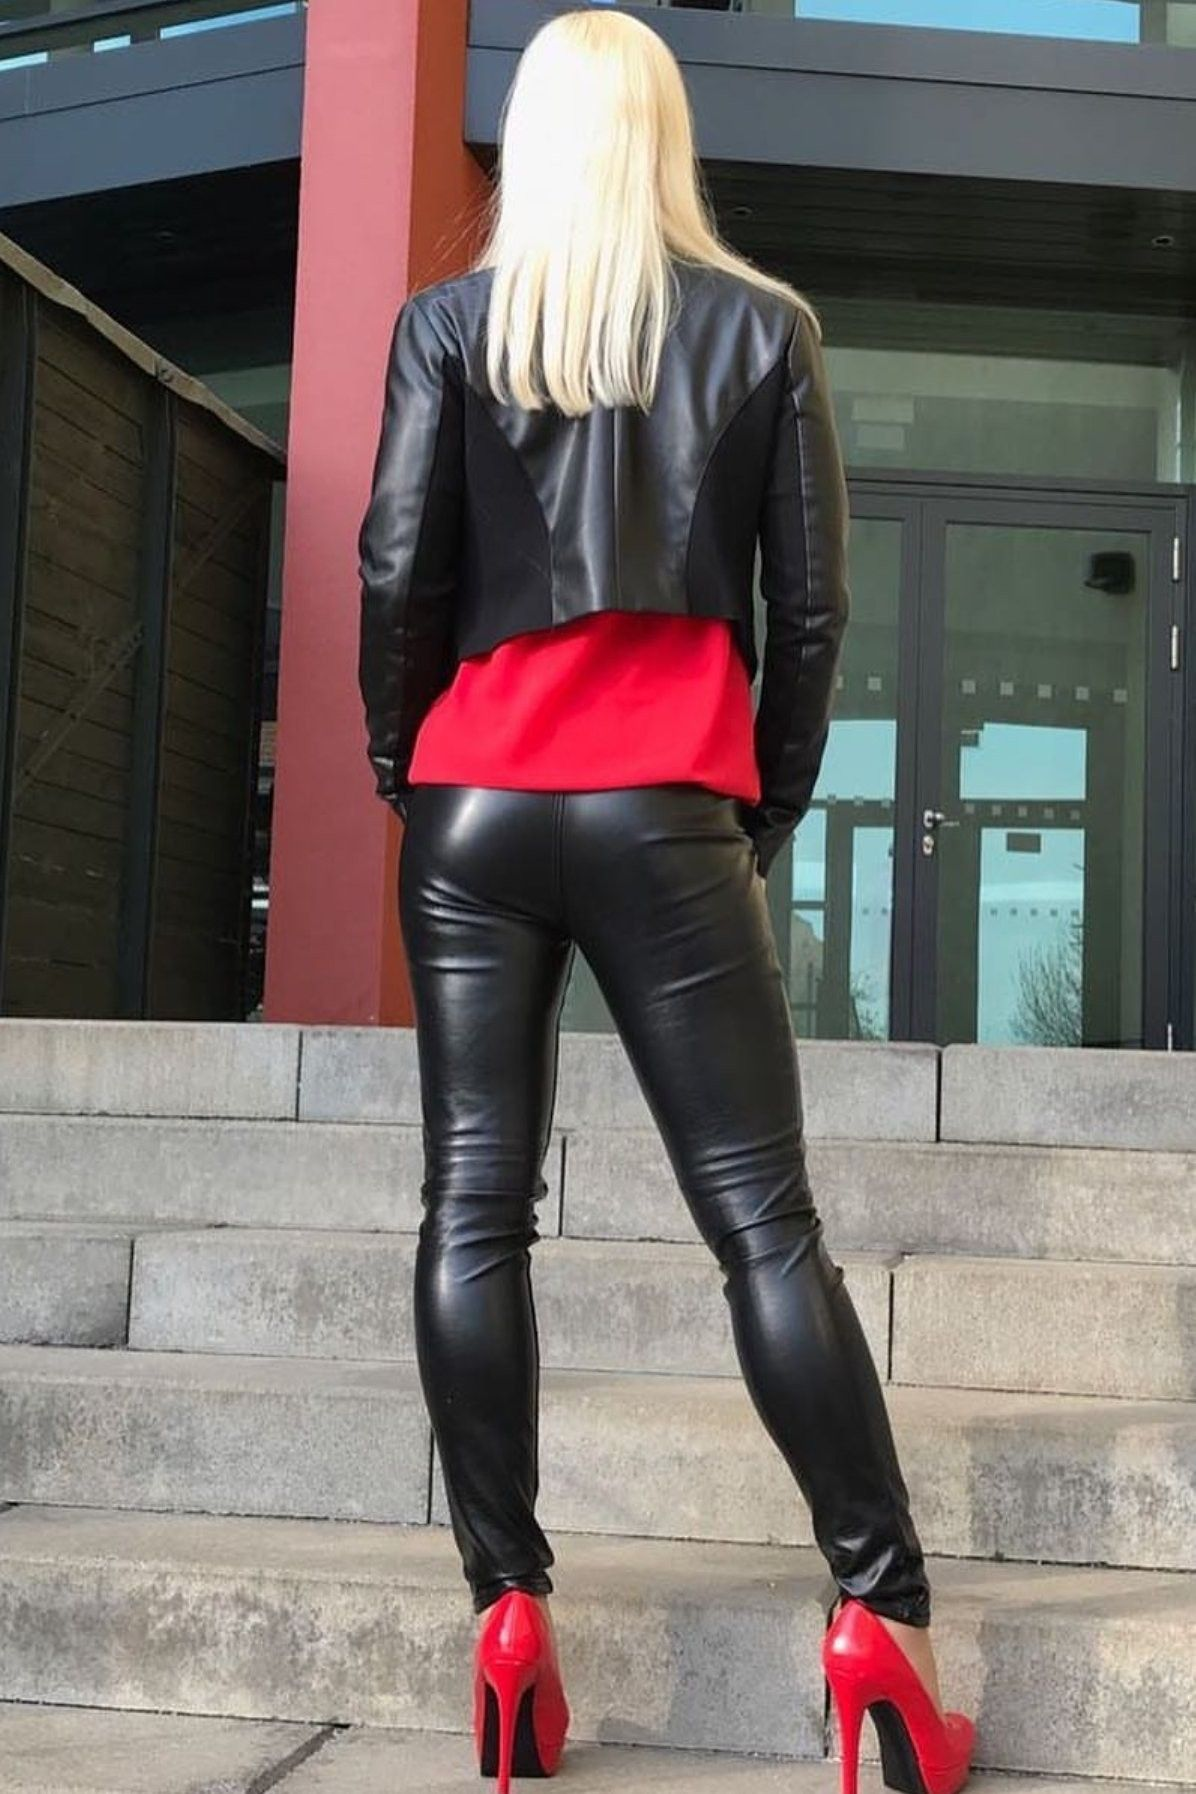 Geile Frauen In Leggings